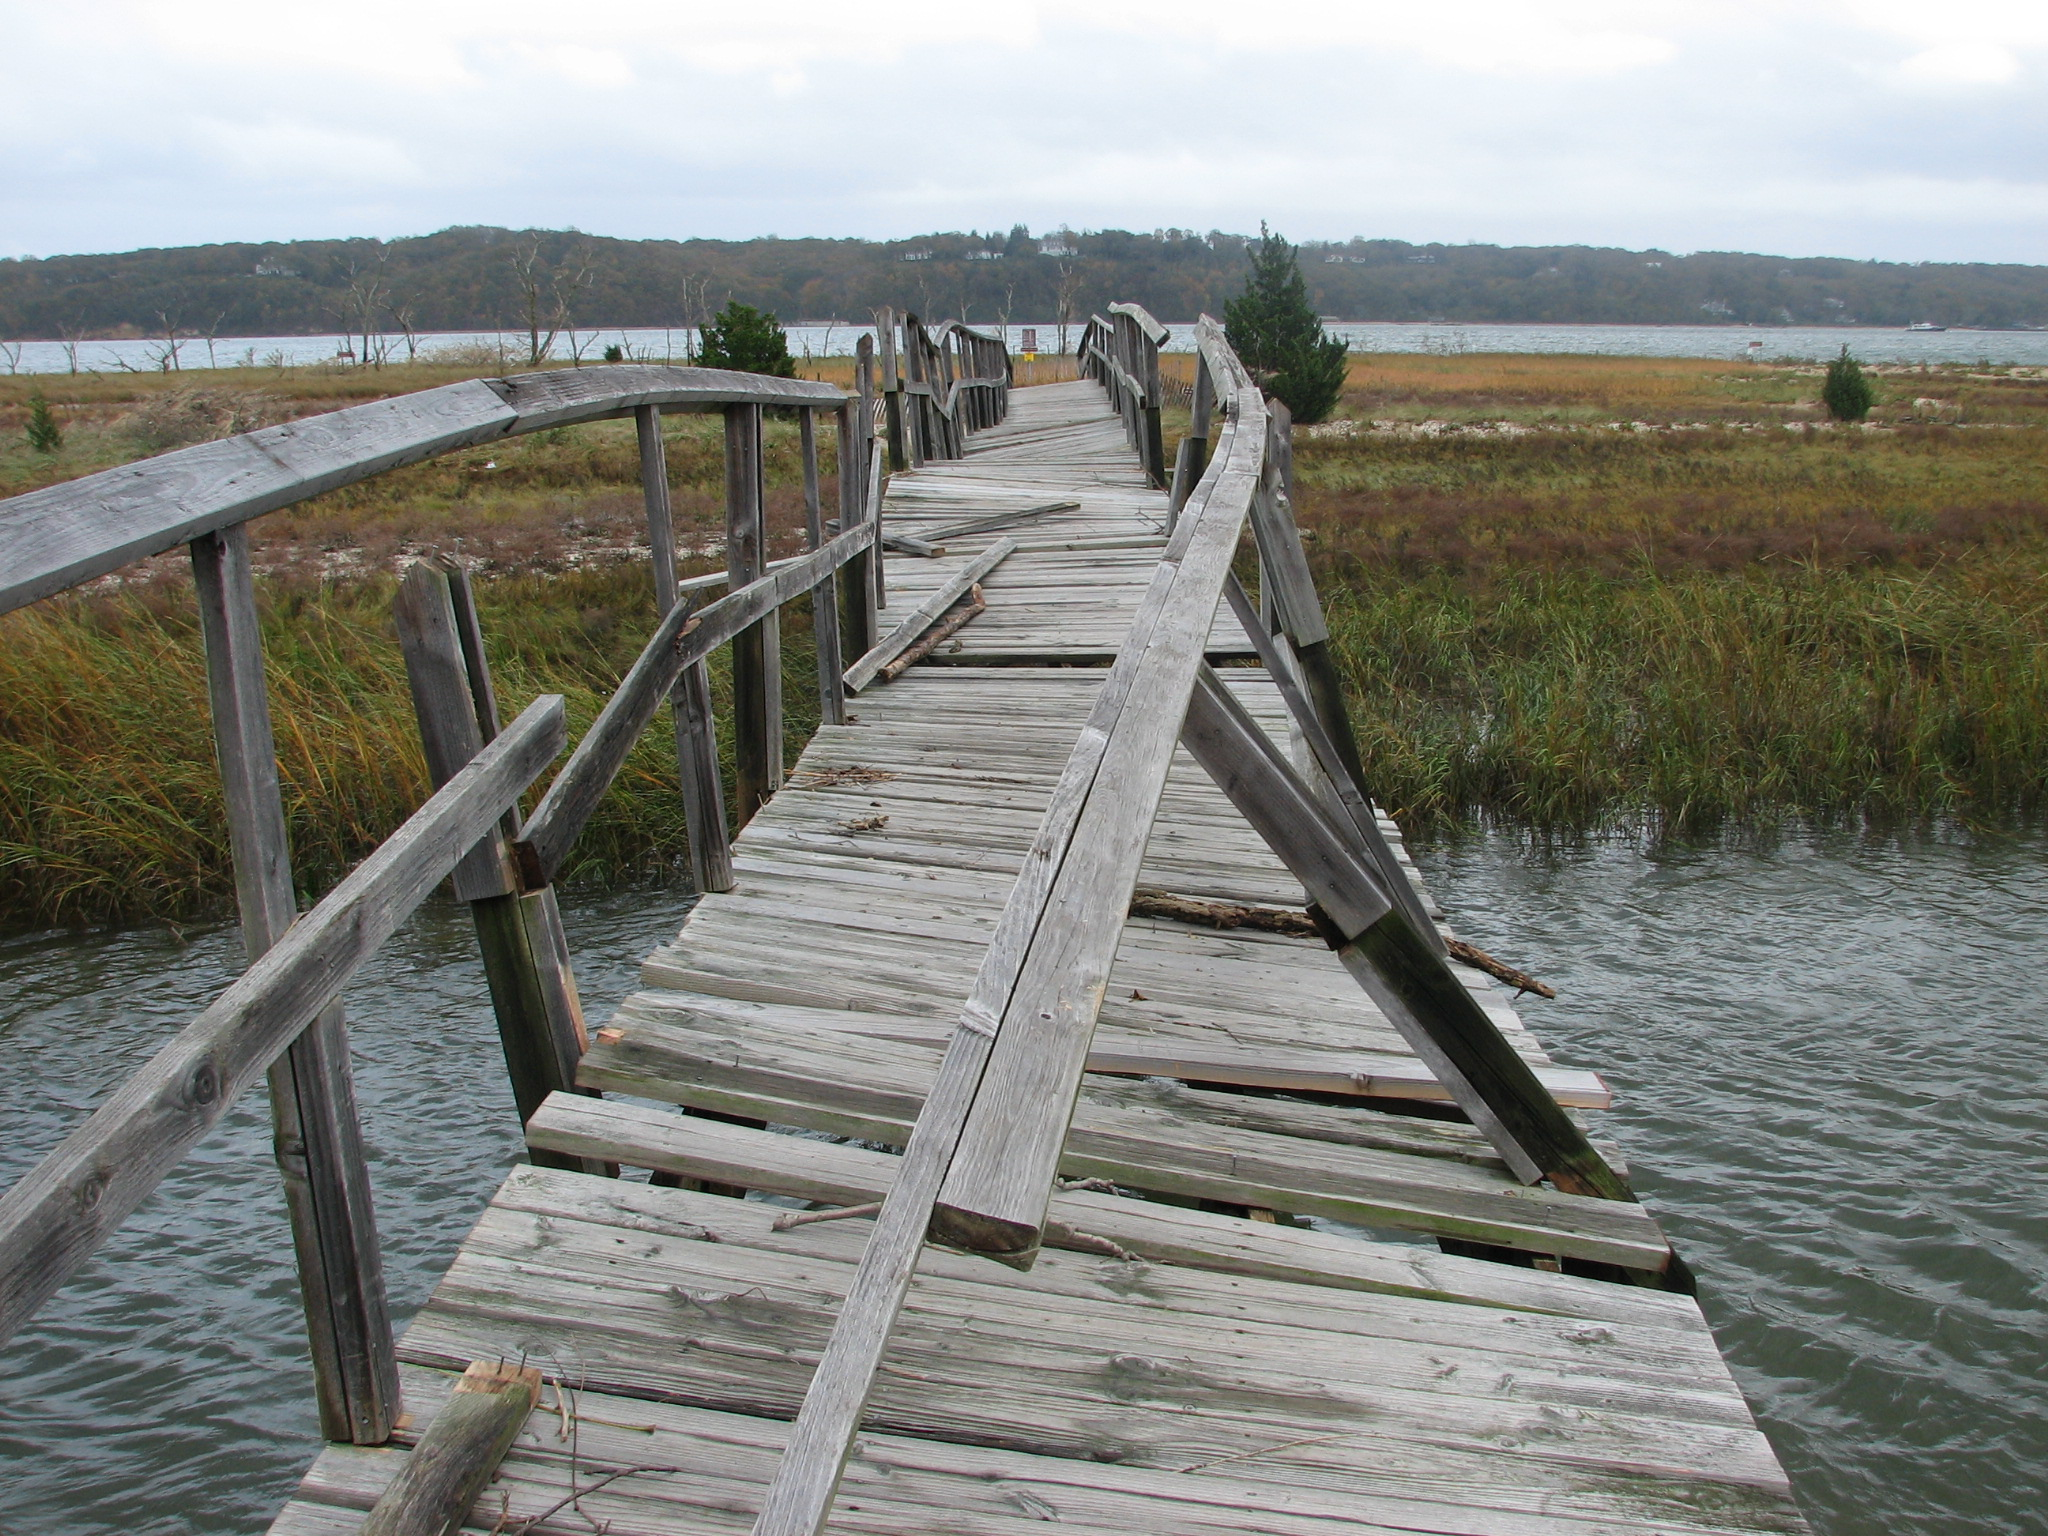 Boardwalk Damage